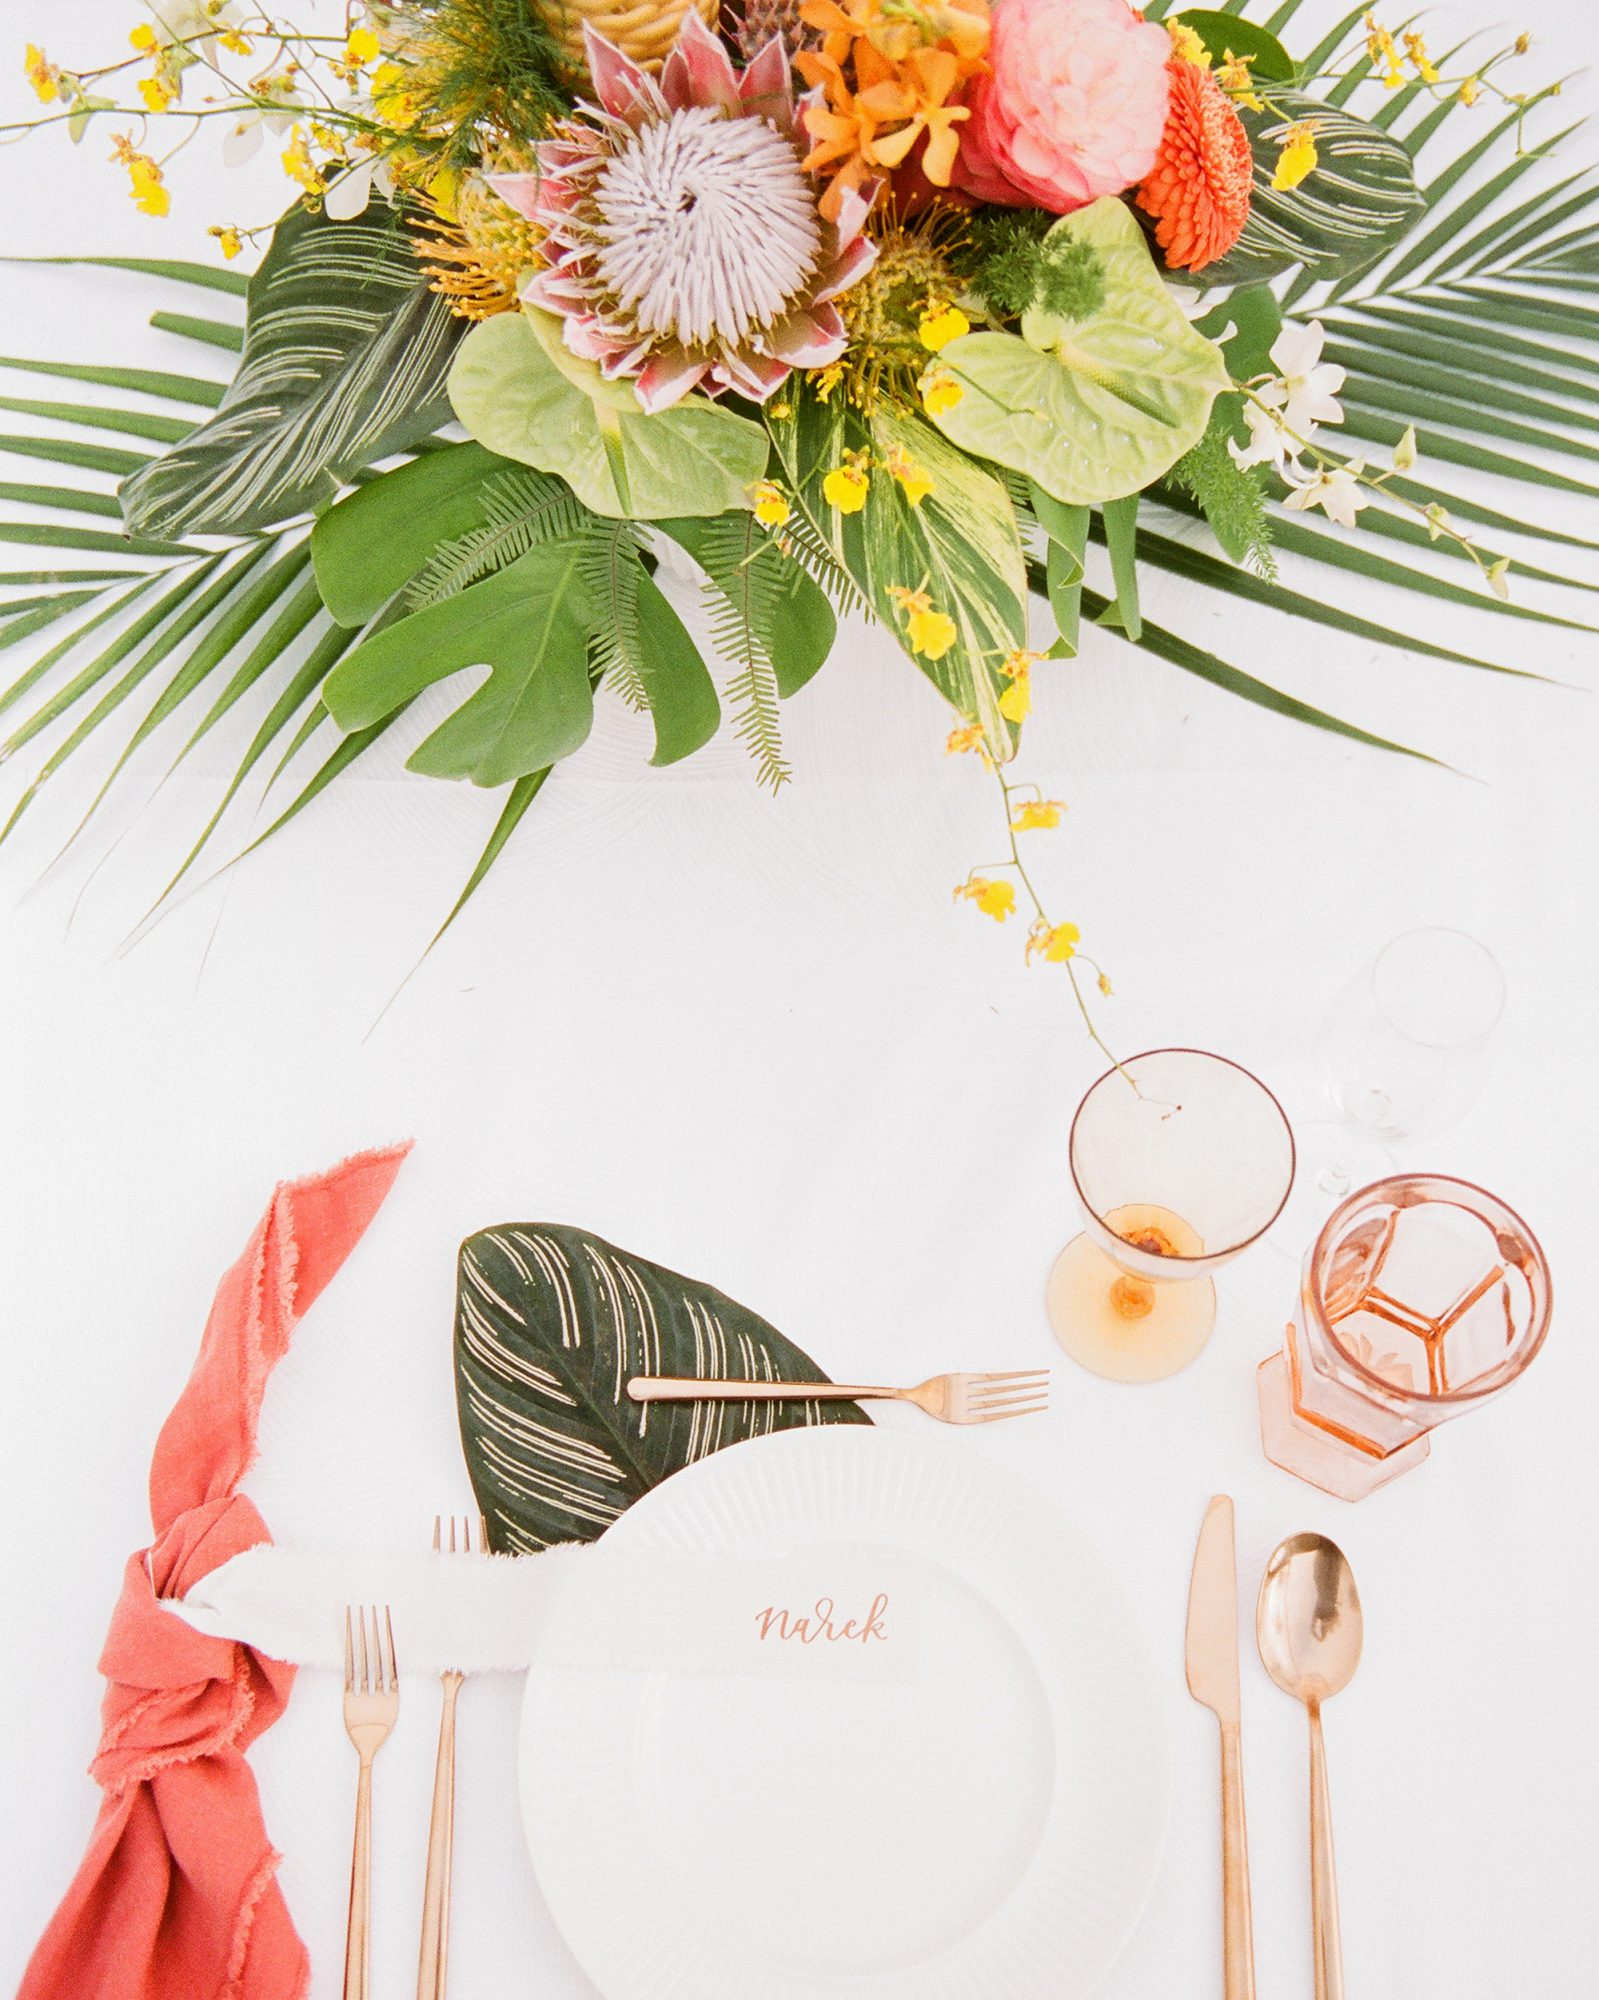 tropical wedding centerpiece filled with protea, monstera, and palm leaves and greenery underneath salad plates